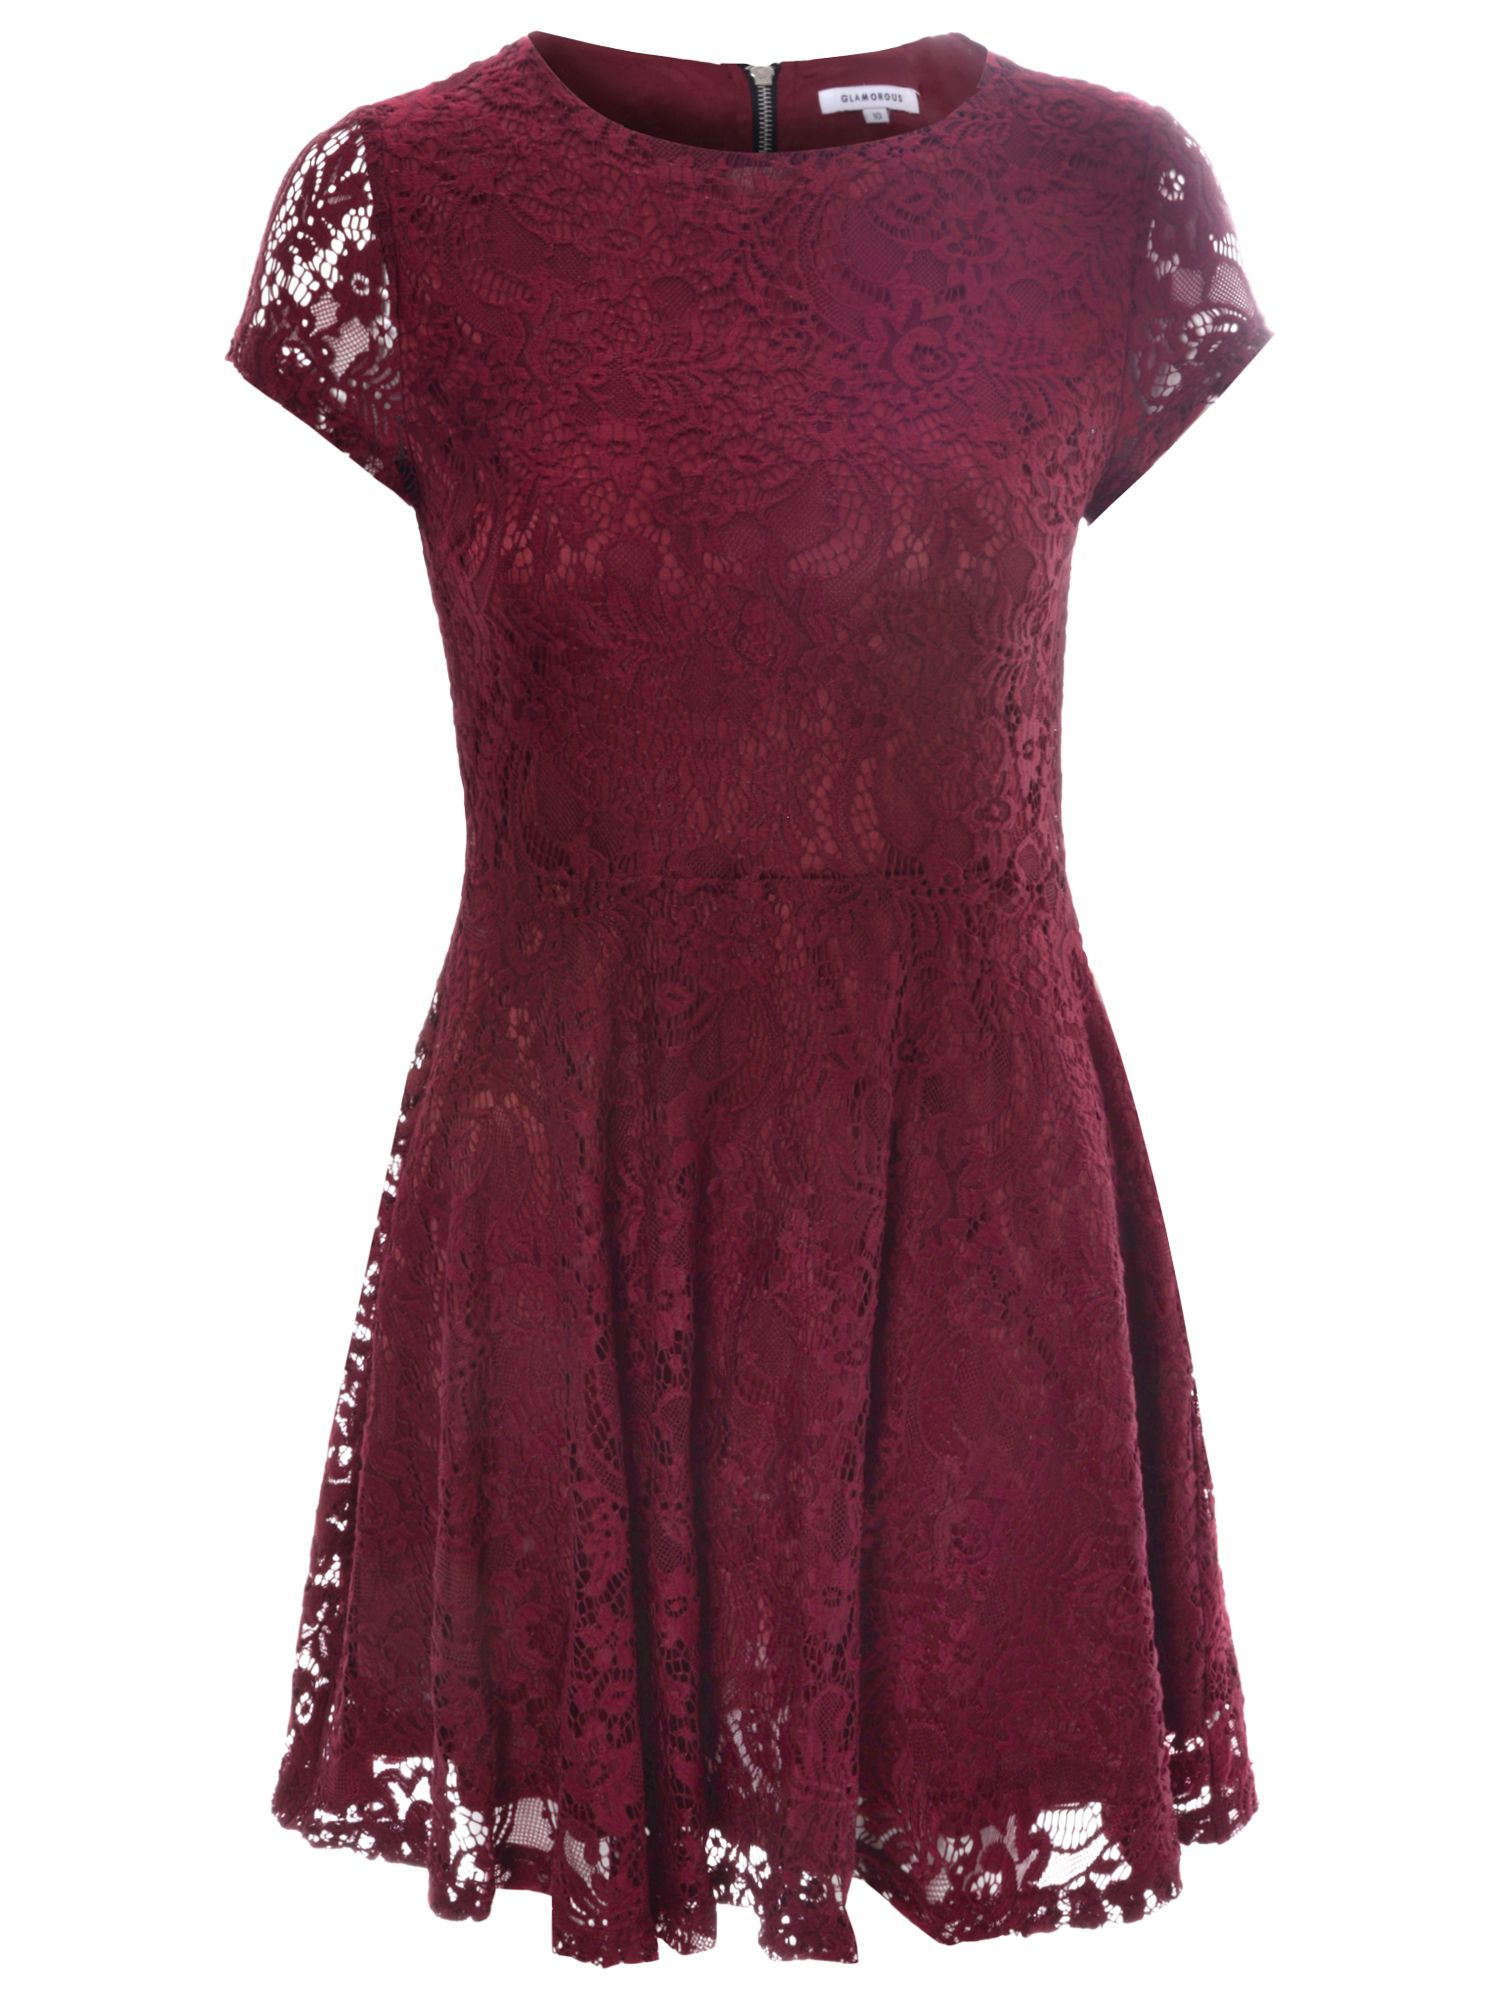 true decadence fit and flare lace dress burgundy, true, decadence, fit, flare, lace, dress, burgundy, true decadence, 14|10|16|18, clearance, womenswear offers, womens dresses offers, women, inactive womenswear, new reductions, womens dresses, party outfits, party dresses, special offers, 1723412